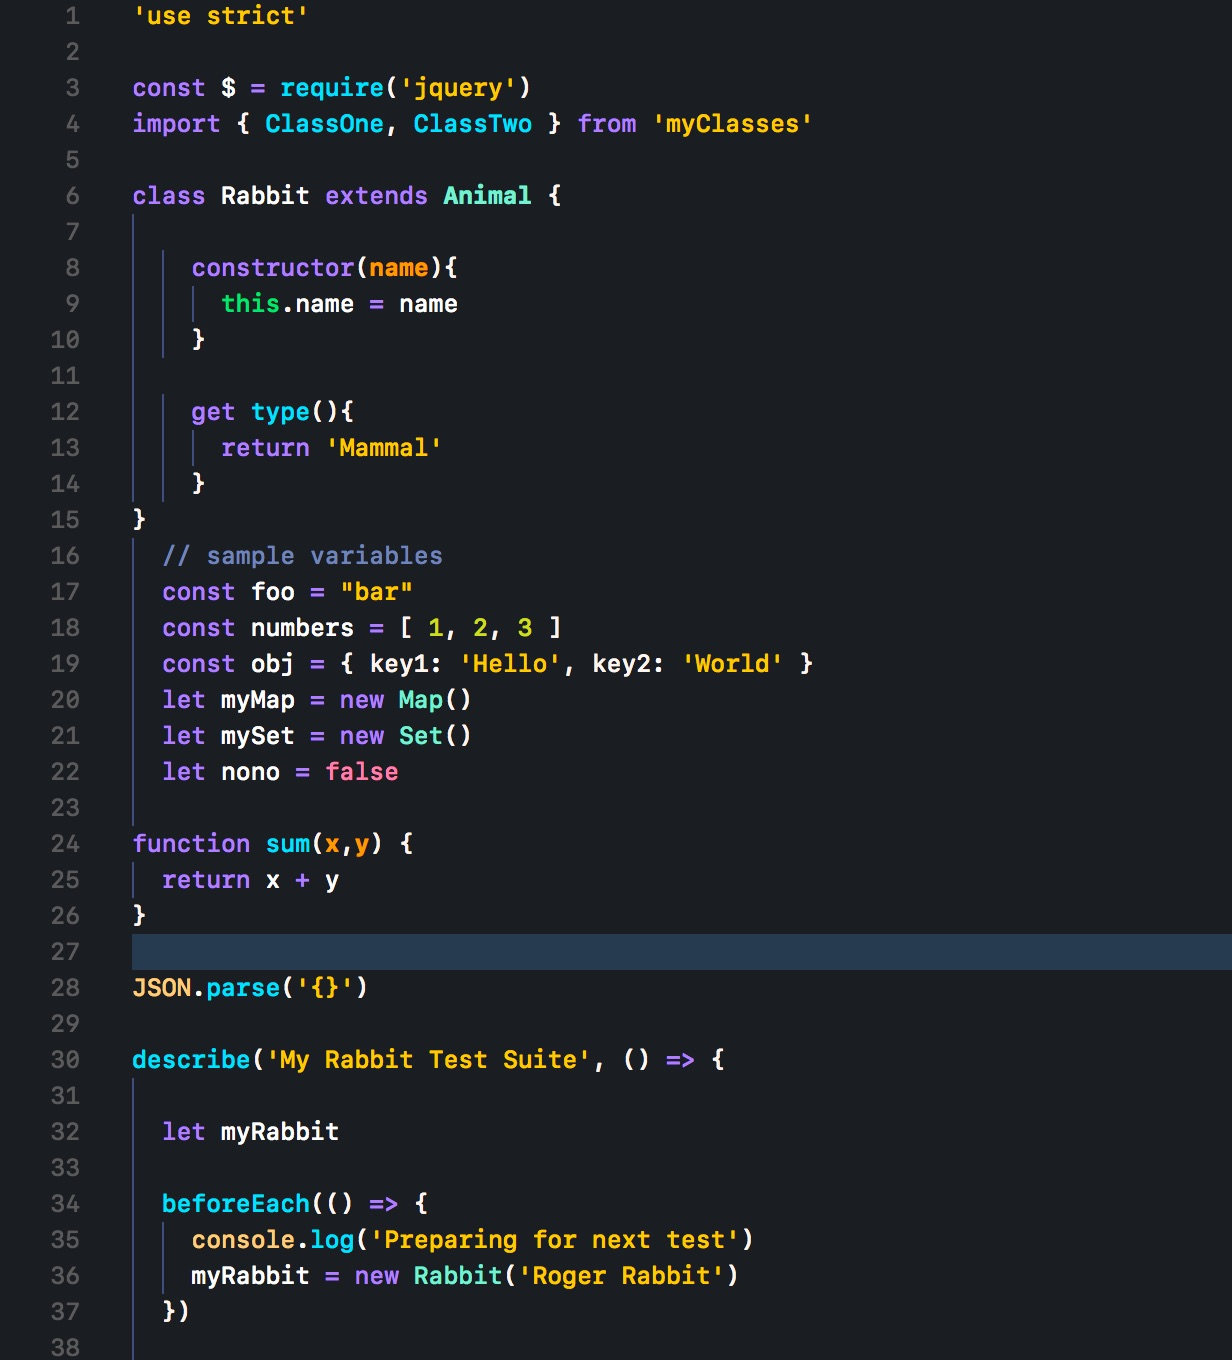 sample-code-alternate-js